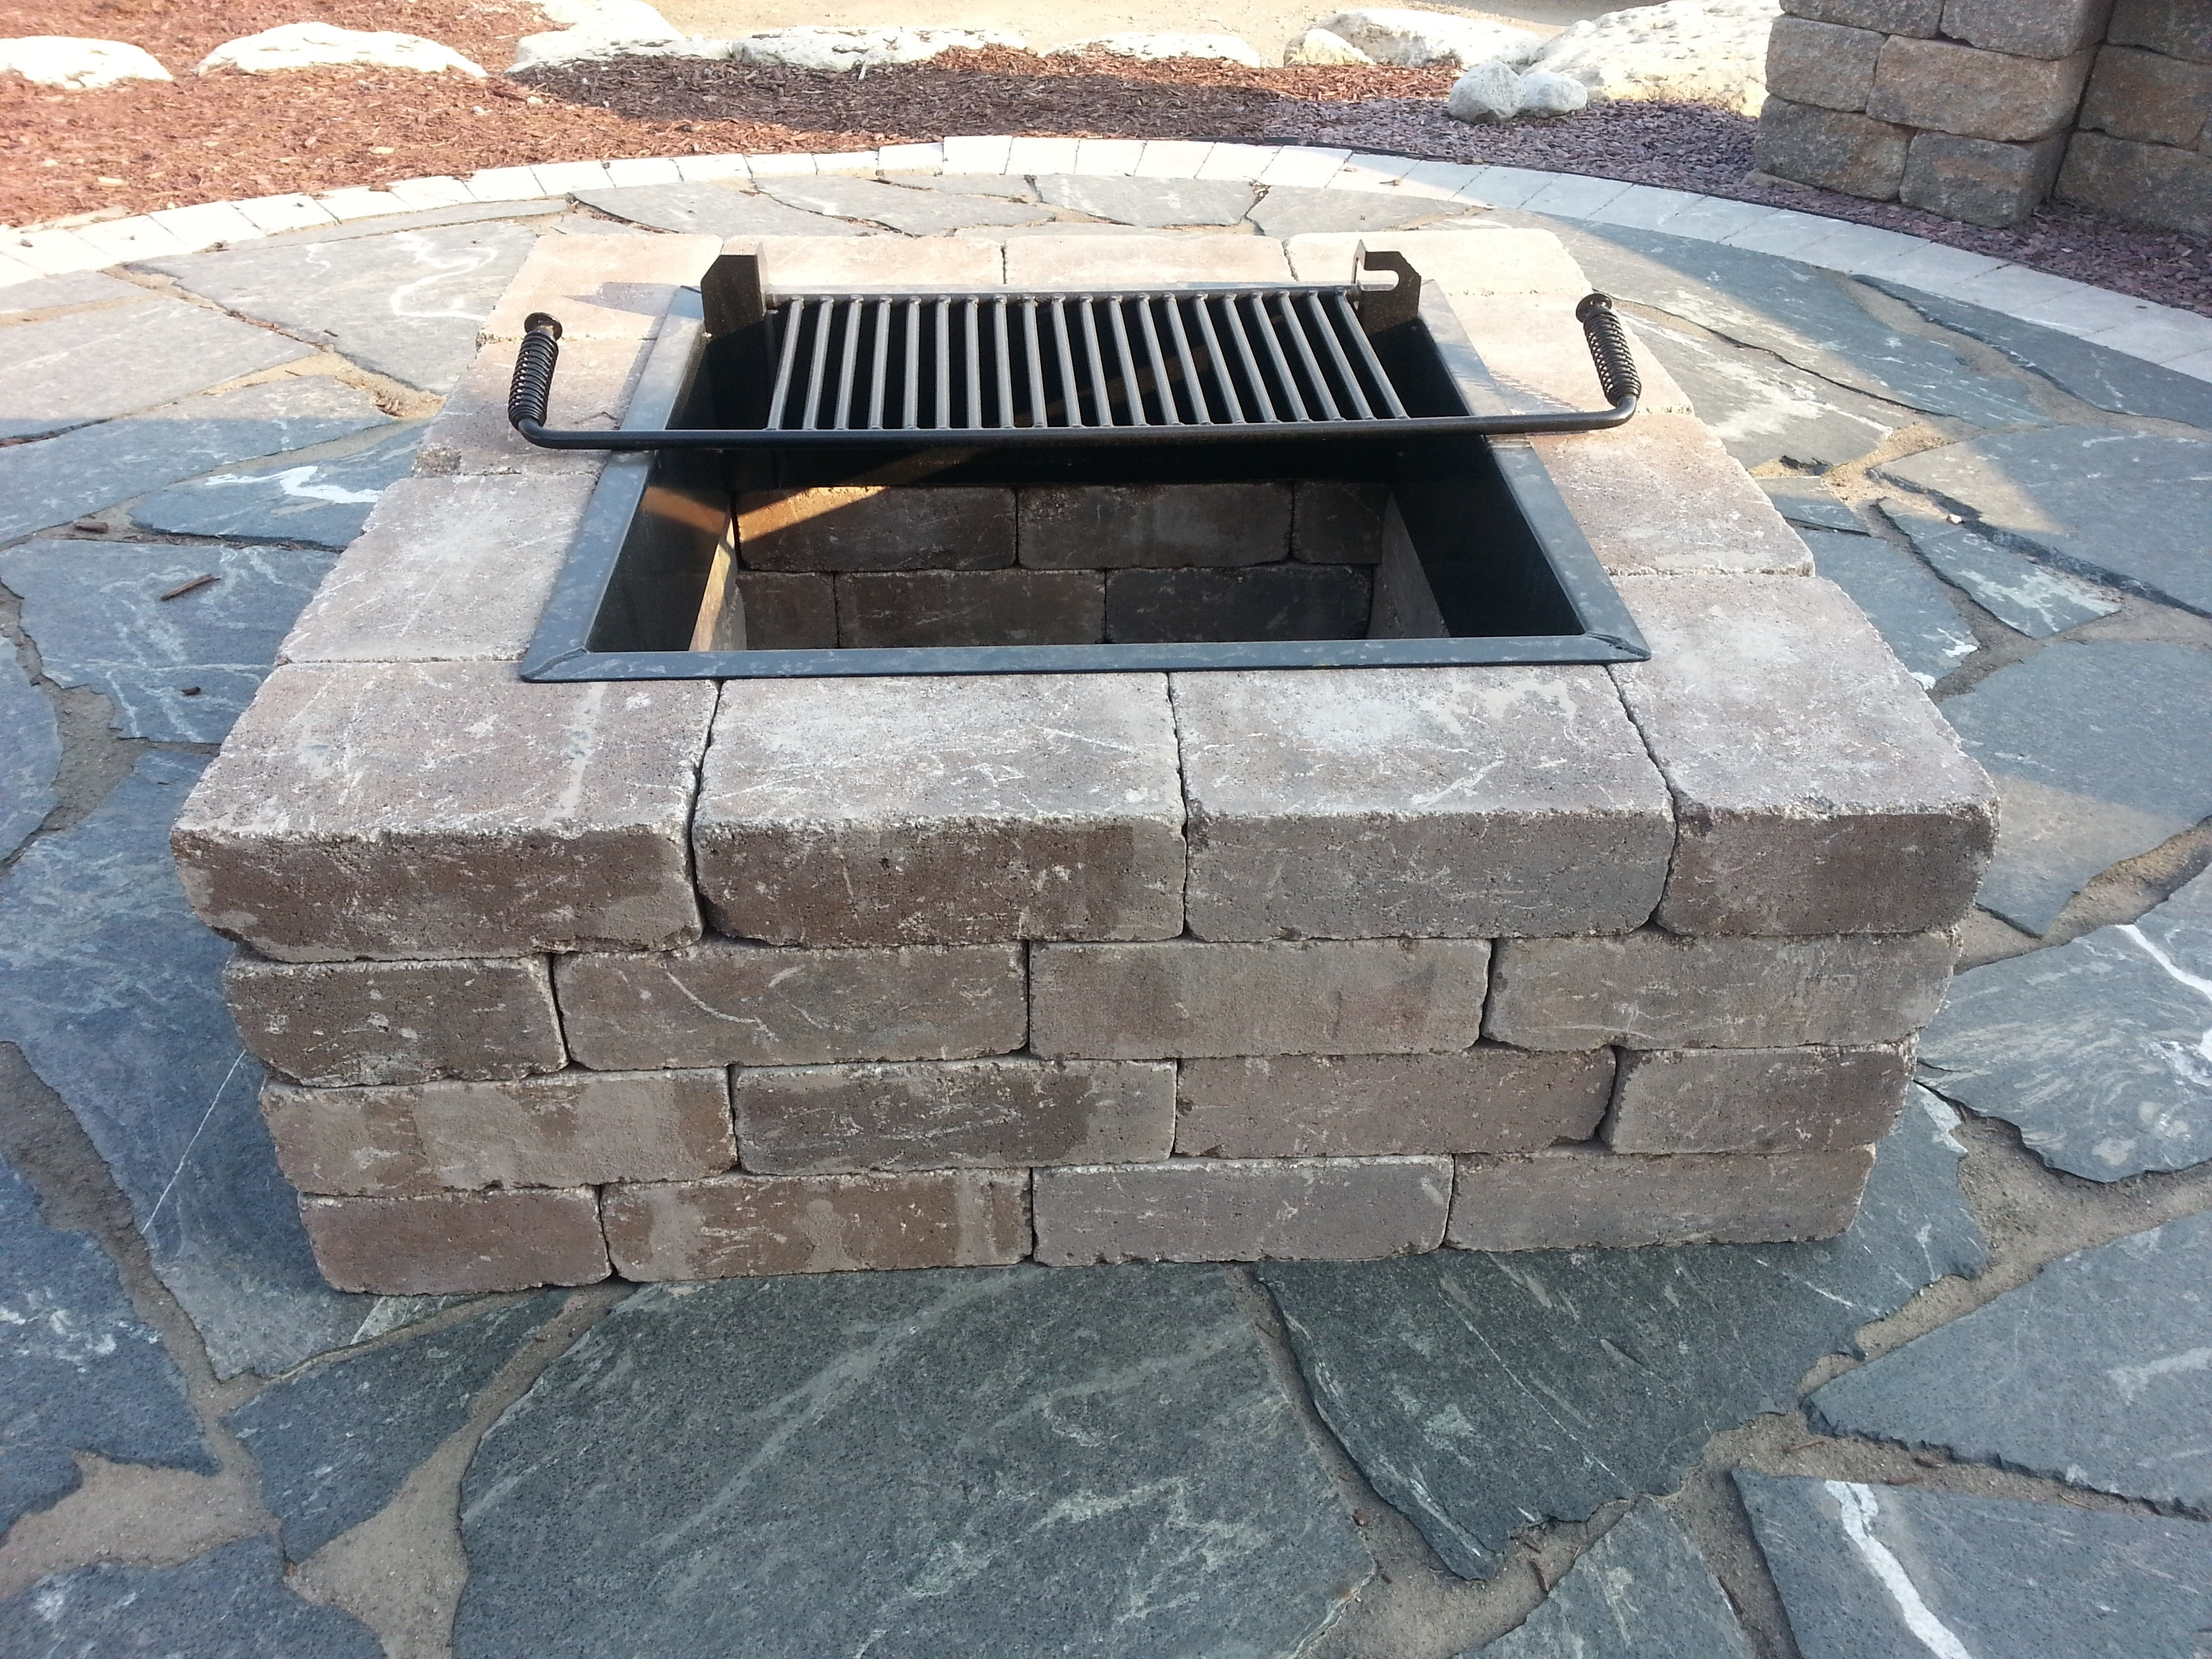 Best ideas about DIY Fire Pit Kit . Save or Pin Fireplaces Landscape Fire Pits — Bistrodre Porch and Now.